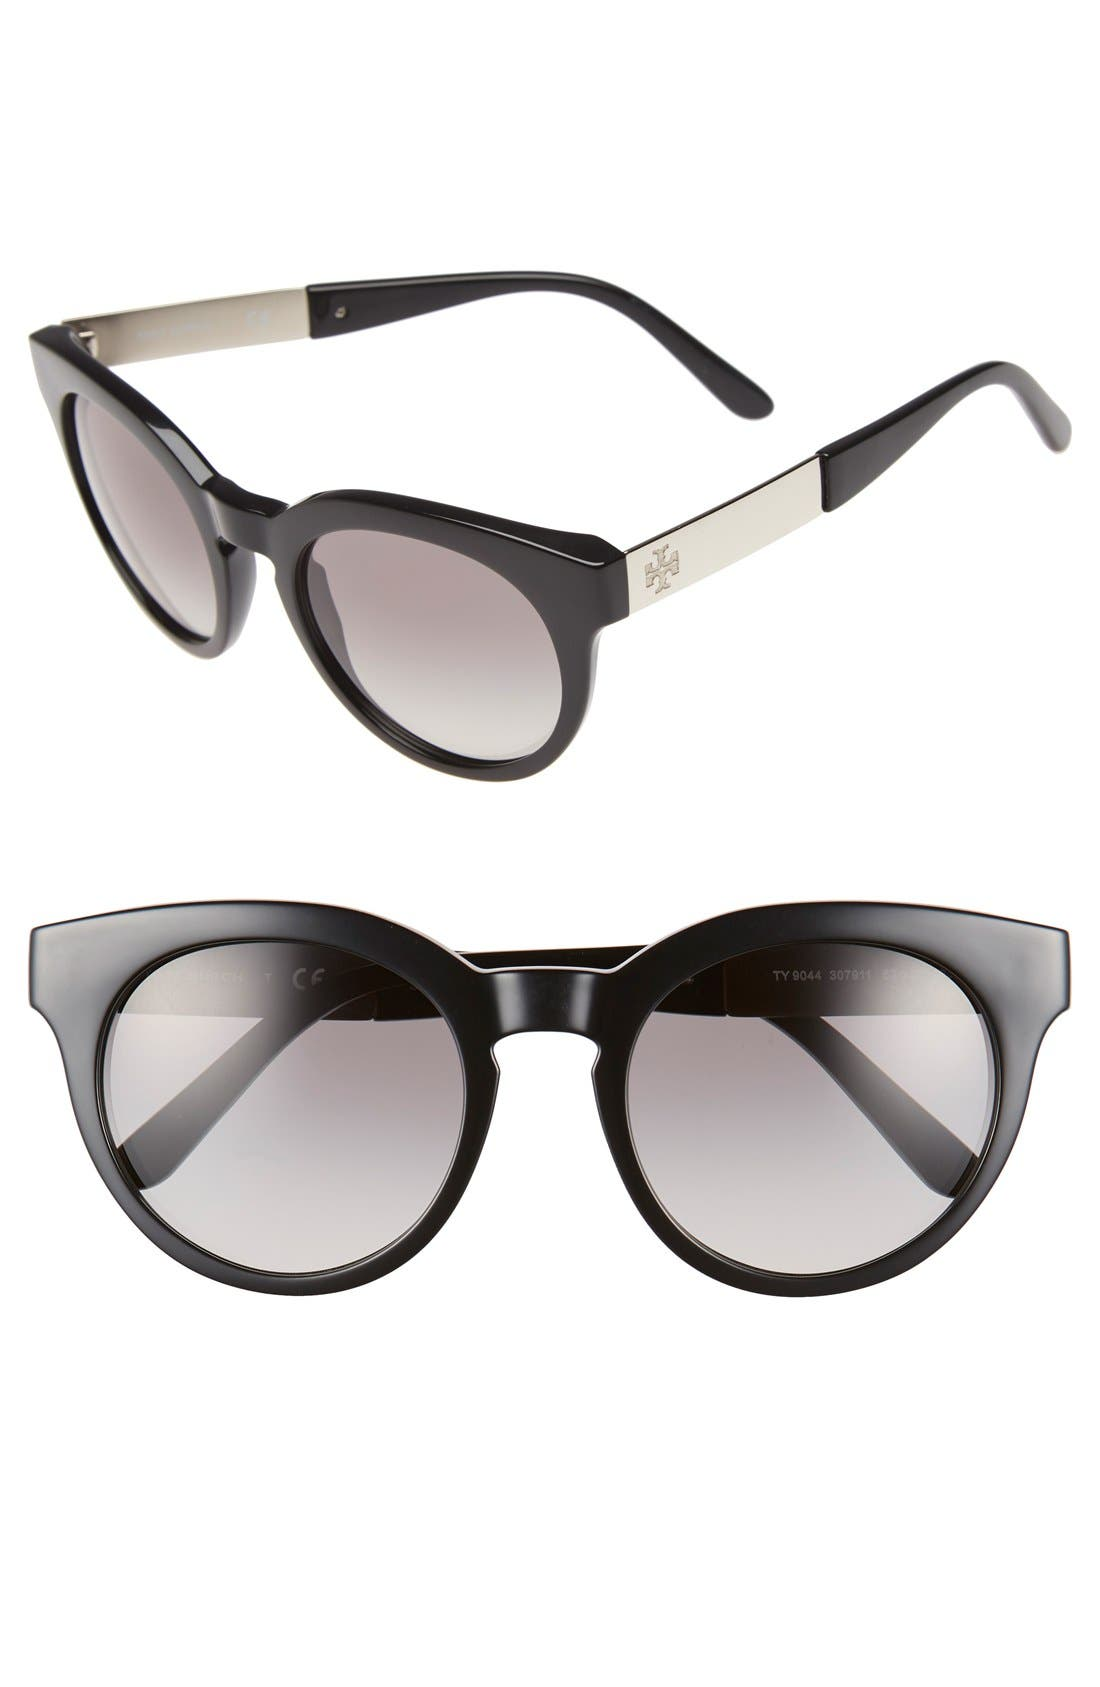 Alternate Image 1 Selected - Tory Burch 52mm Retro Sunglasses